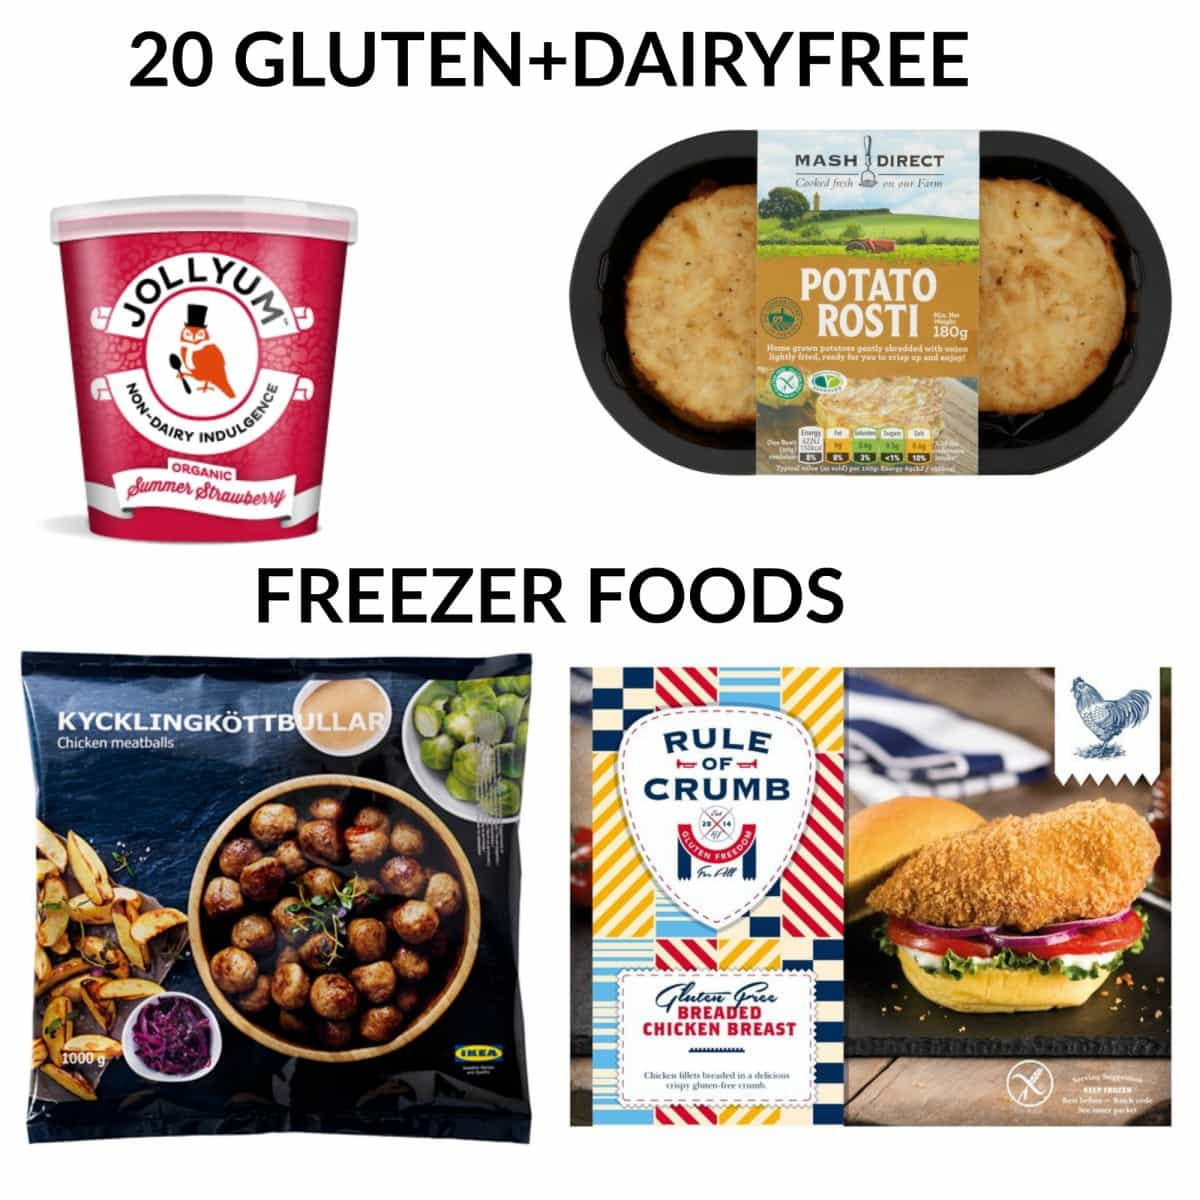 A guide to the best dairy free and gluten free freezer foods. Perfect to keep in the freezer, these gluten free freezer foods are great for last minute cooking!